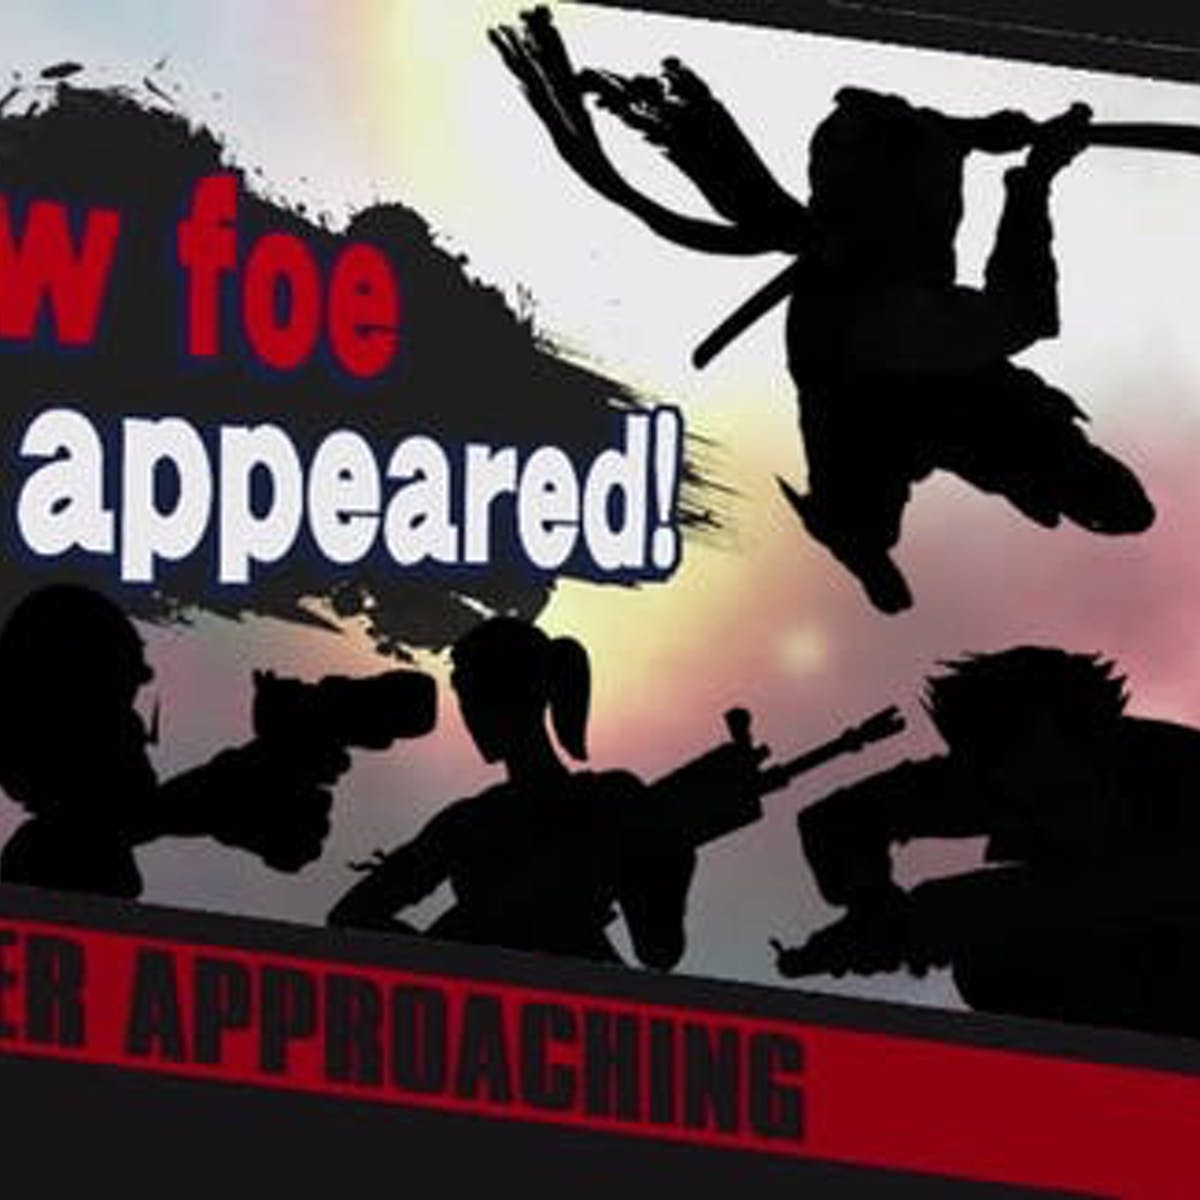 Smash Ultimate' Leaks: 4Chan Leakers Allegedly Reveal 12 Roster